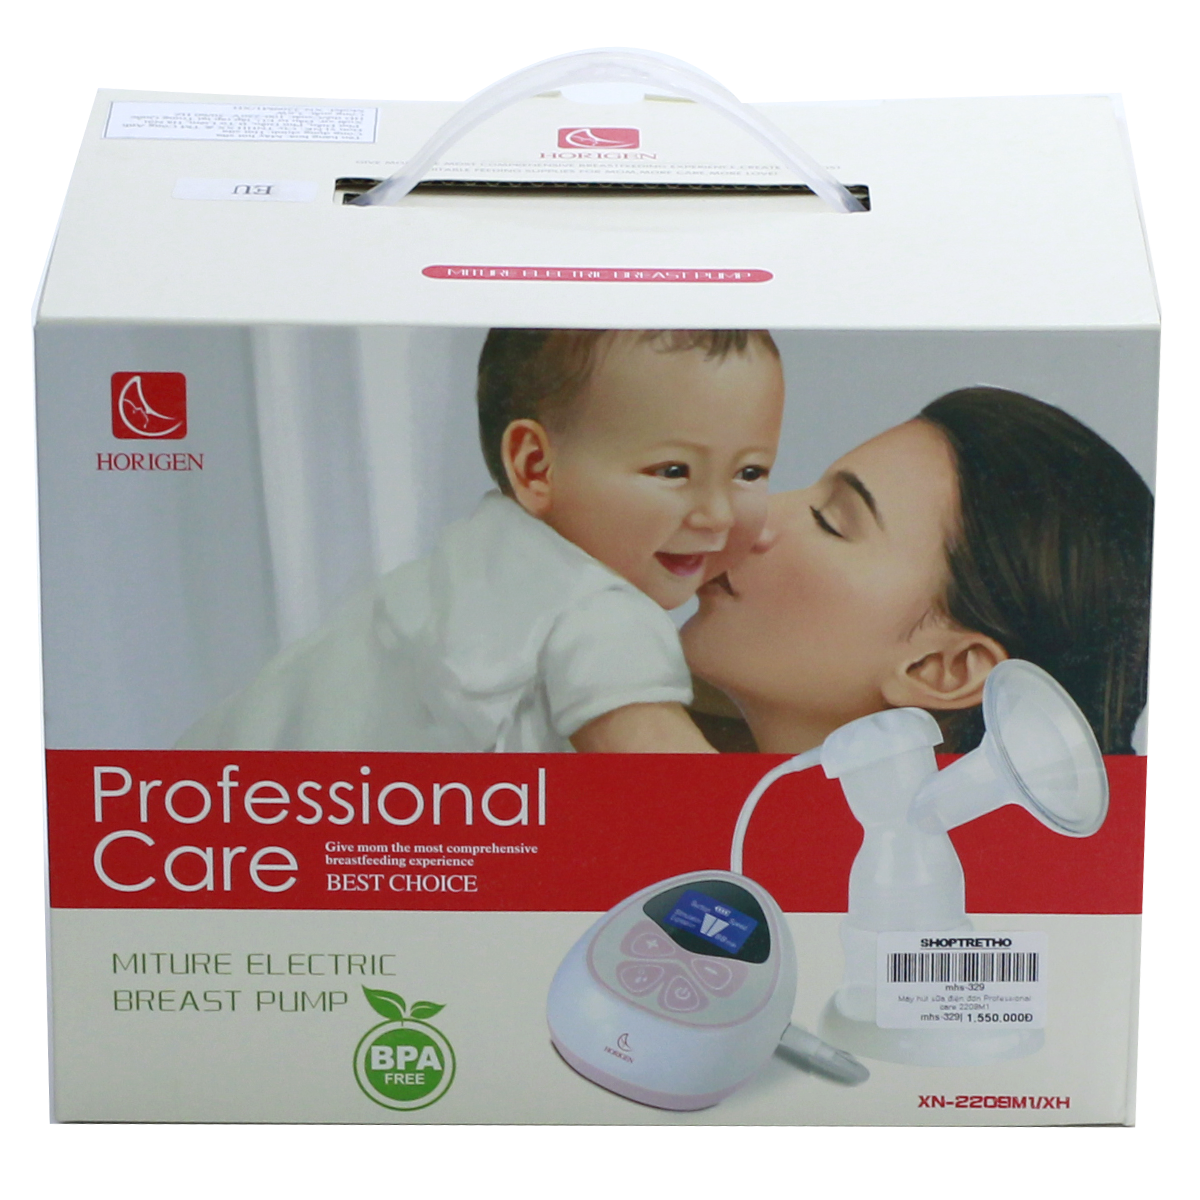 May hut sua dien don Professional care 2209M1